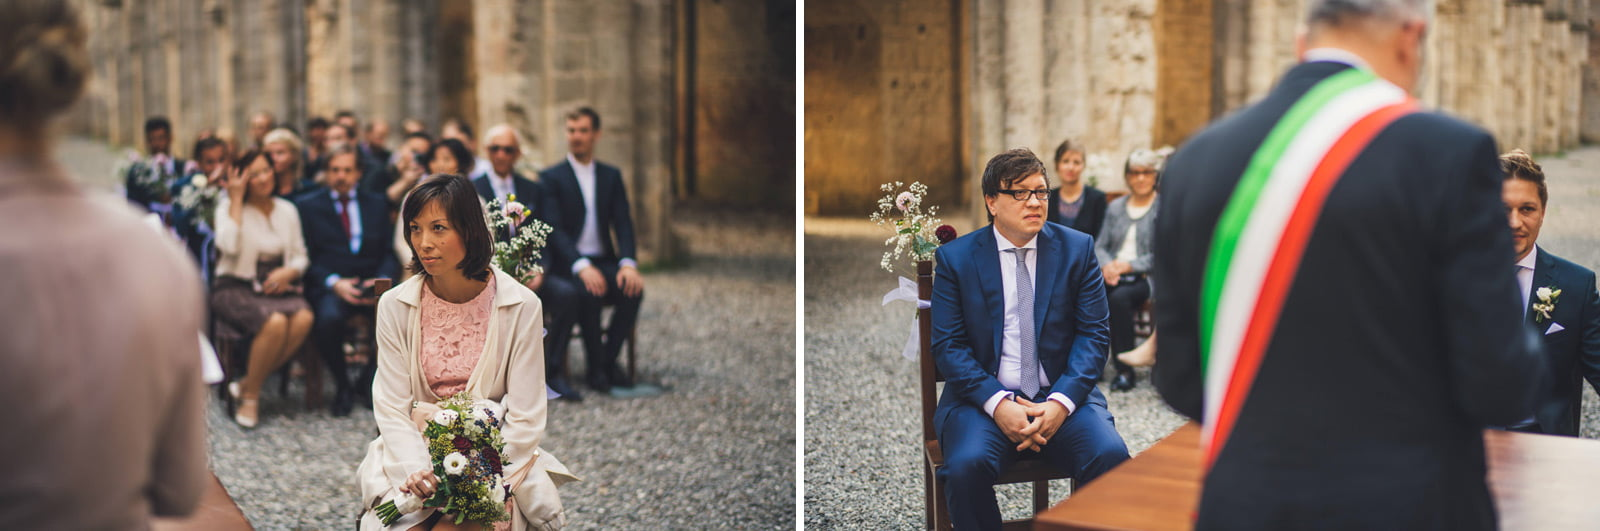 033-wedding-tuscany-san-galgano-siena-photographer